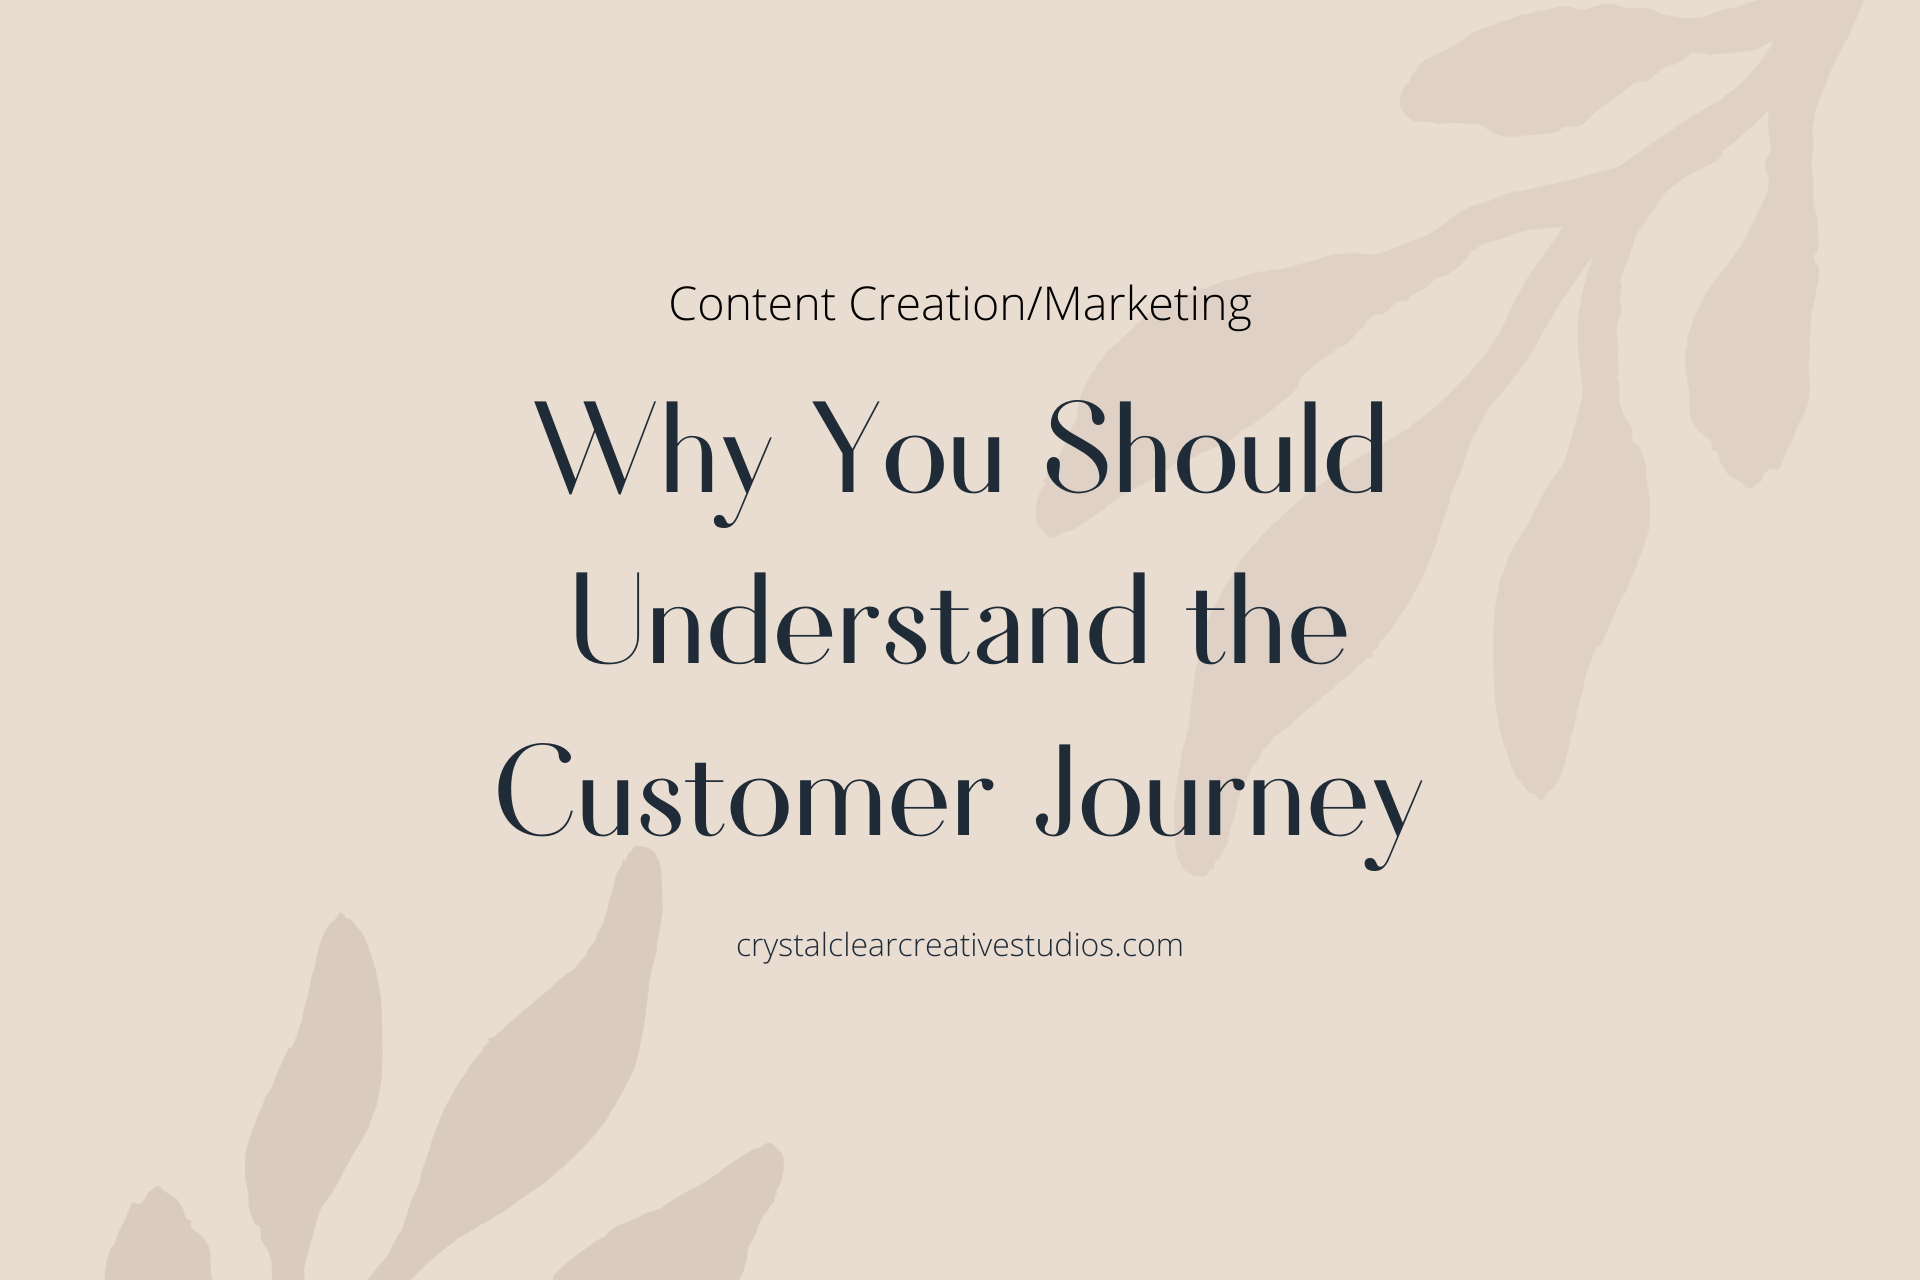 Why You Should Understand the Customer Journey